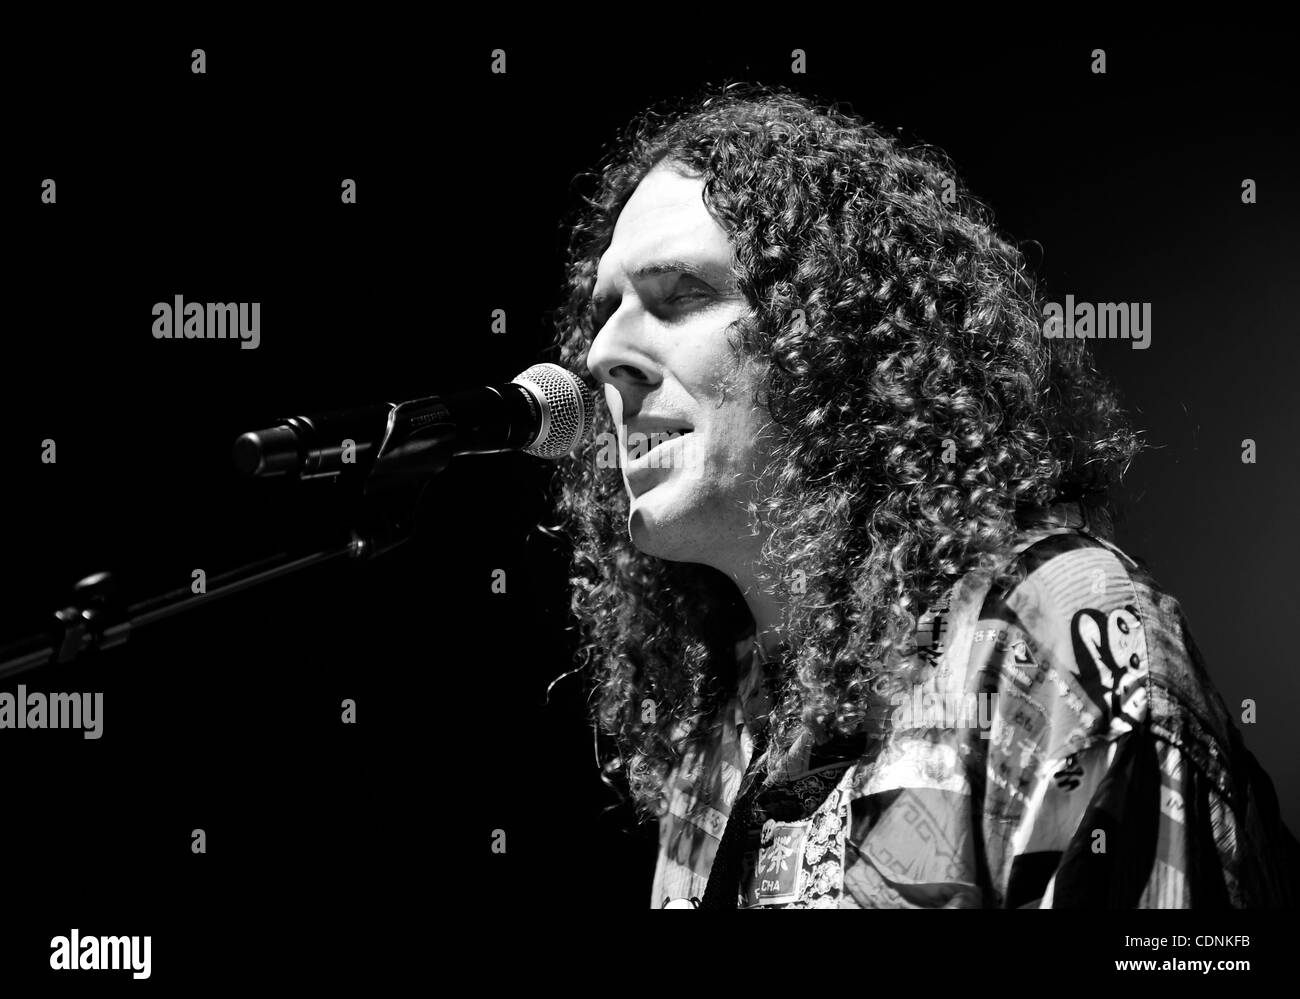 Weird Al Yankovic Black and White Stock Photos & Images - Alamy